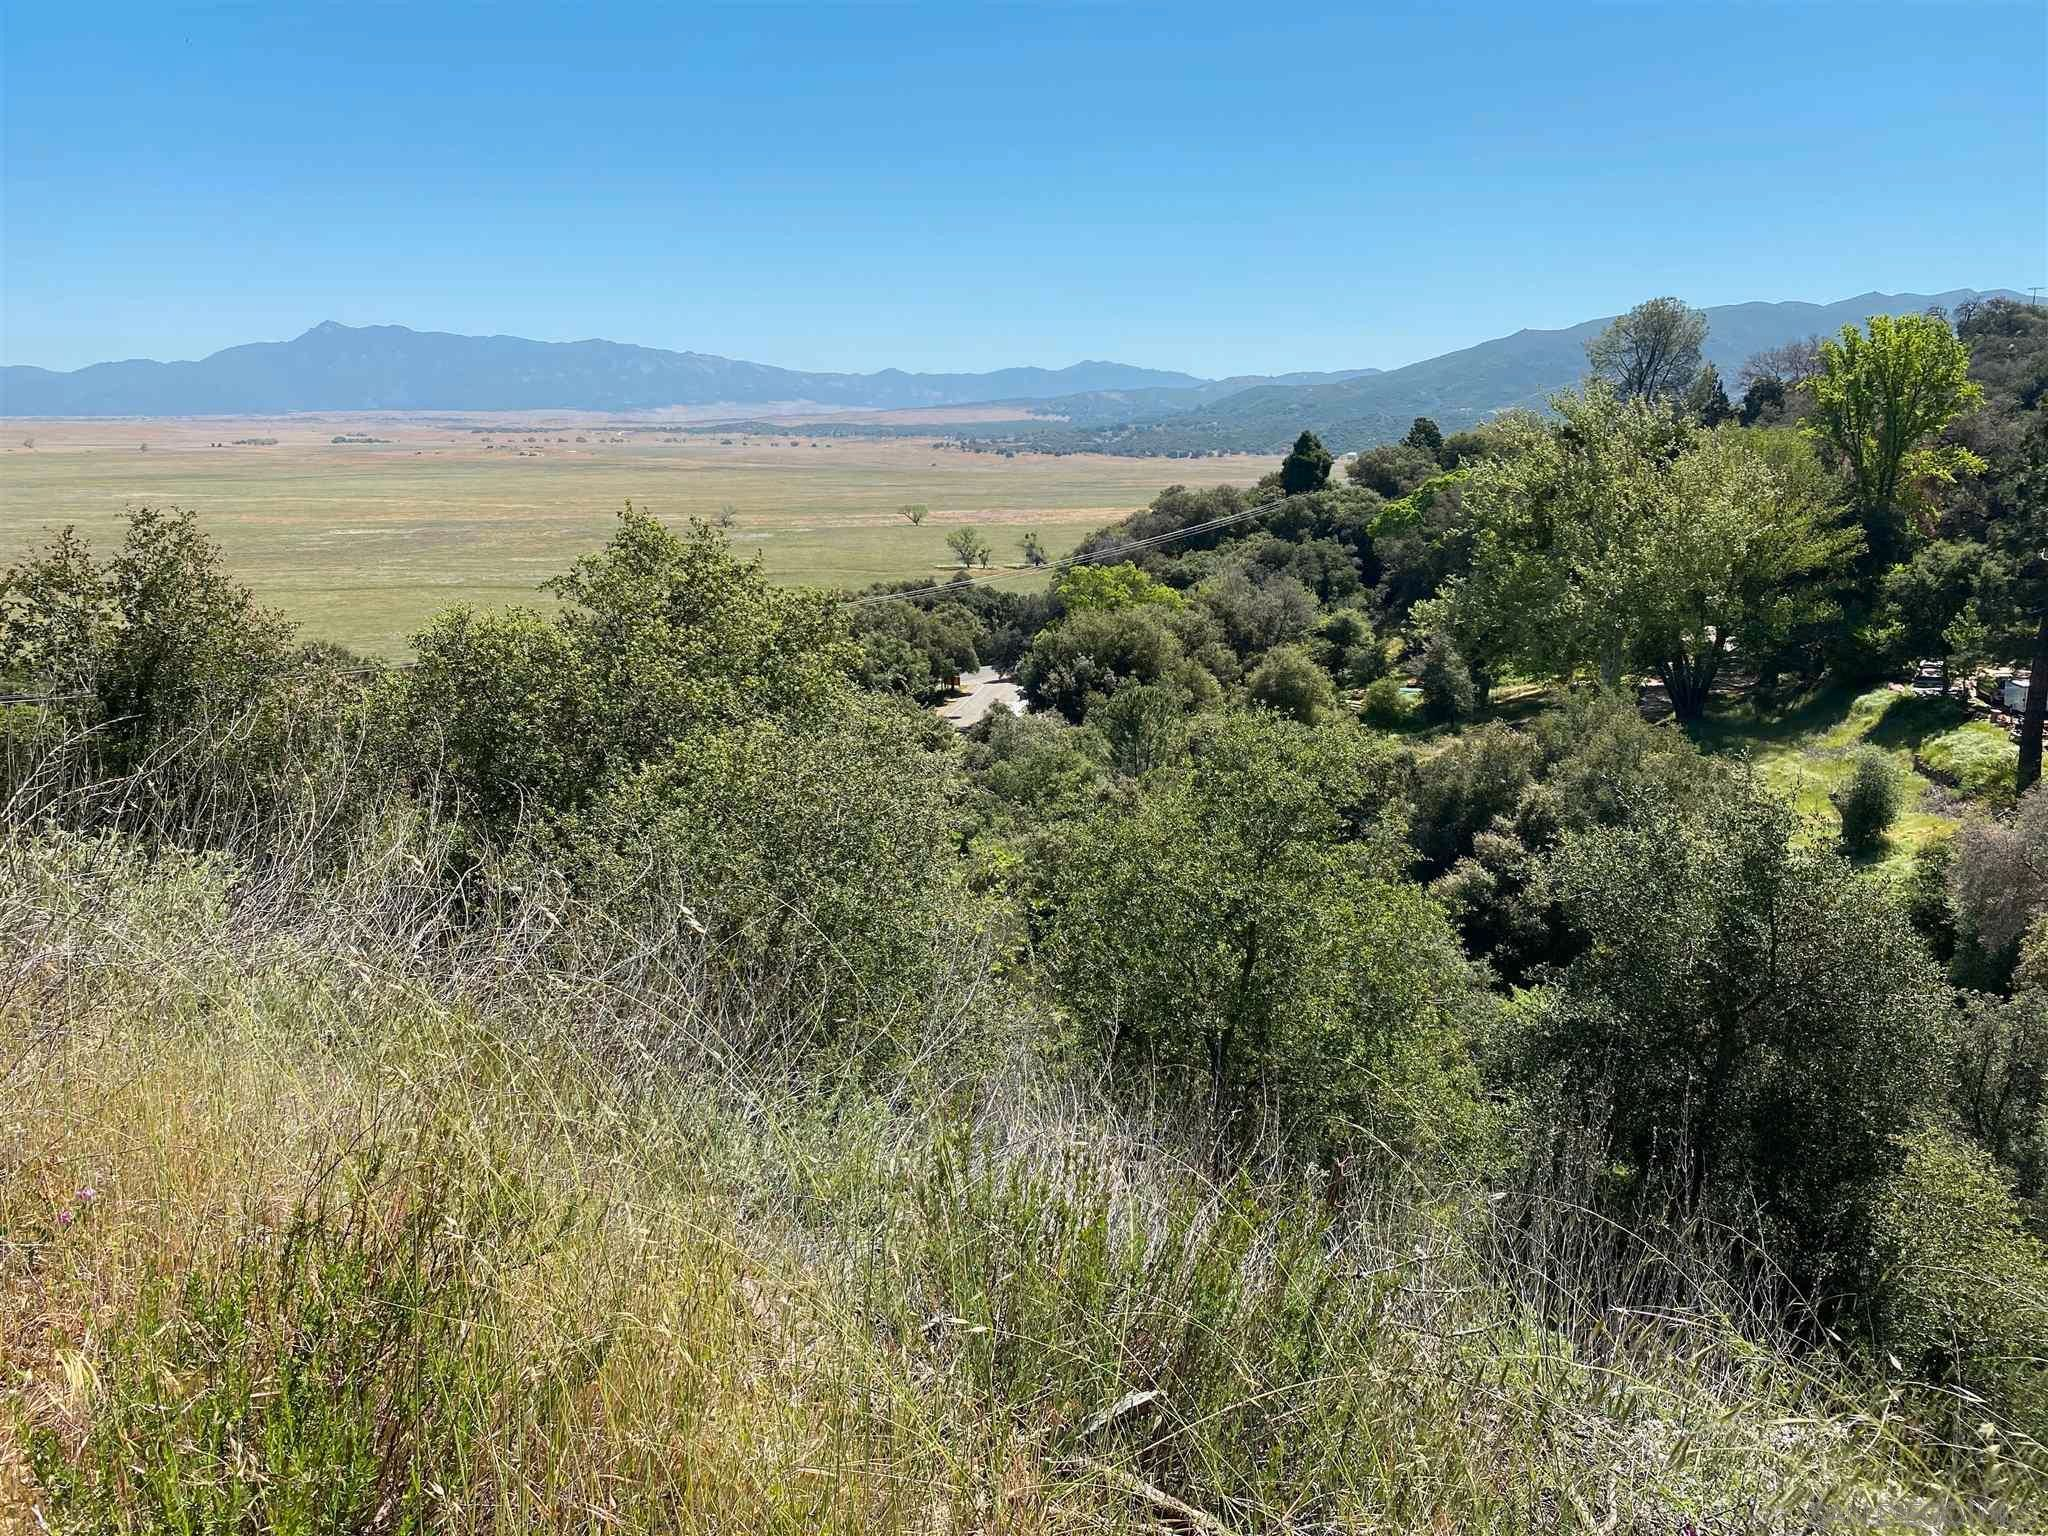 Main Photo: OUT OF AREA Property for sale: 0 Mesa Grande Rd in Santa Ysabel